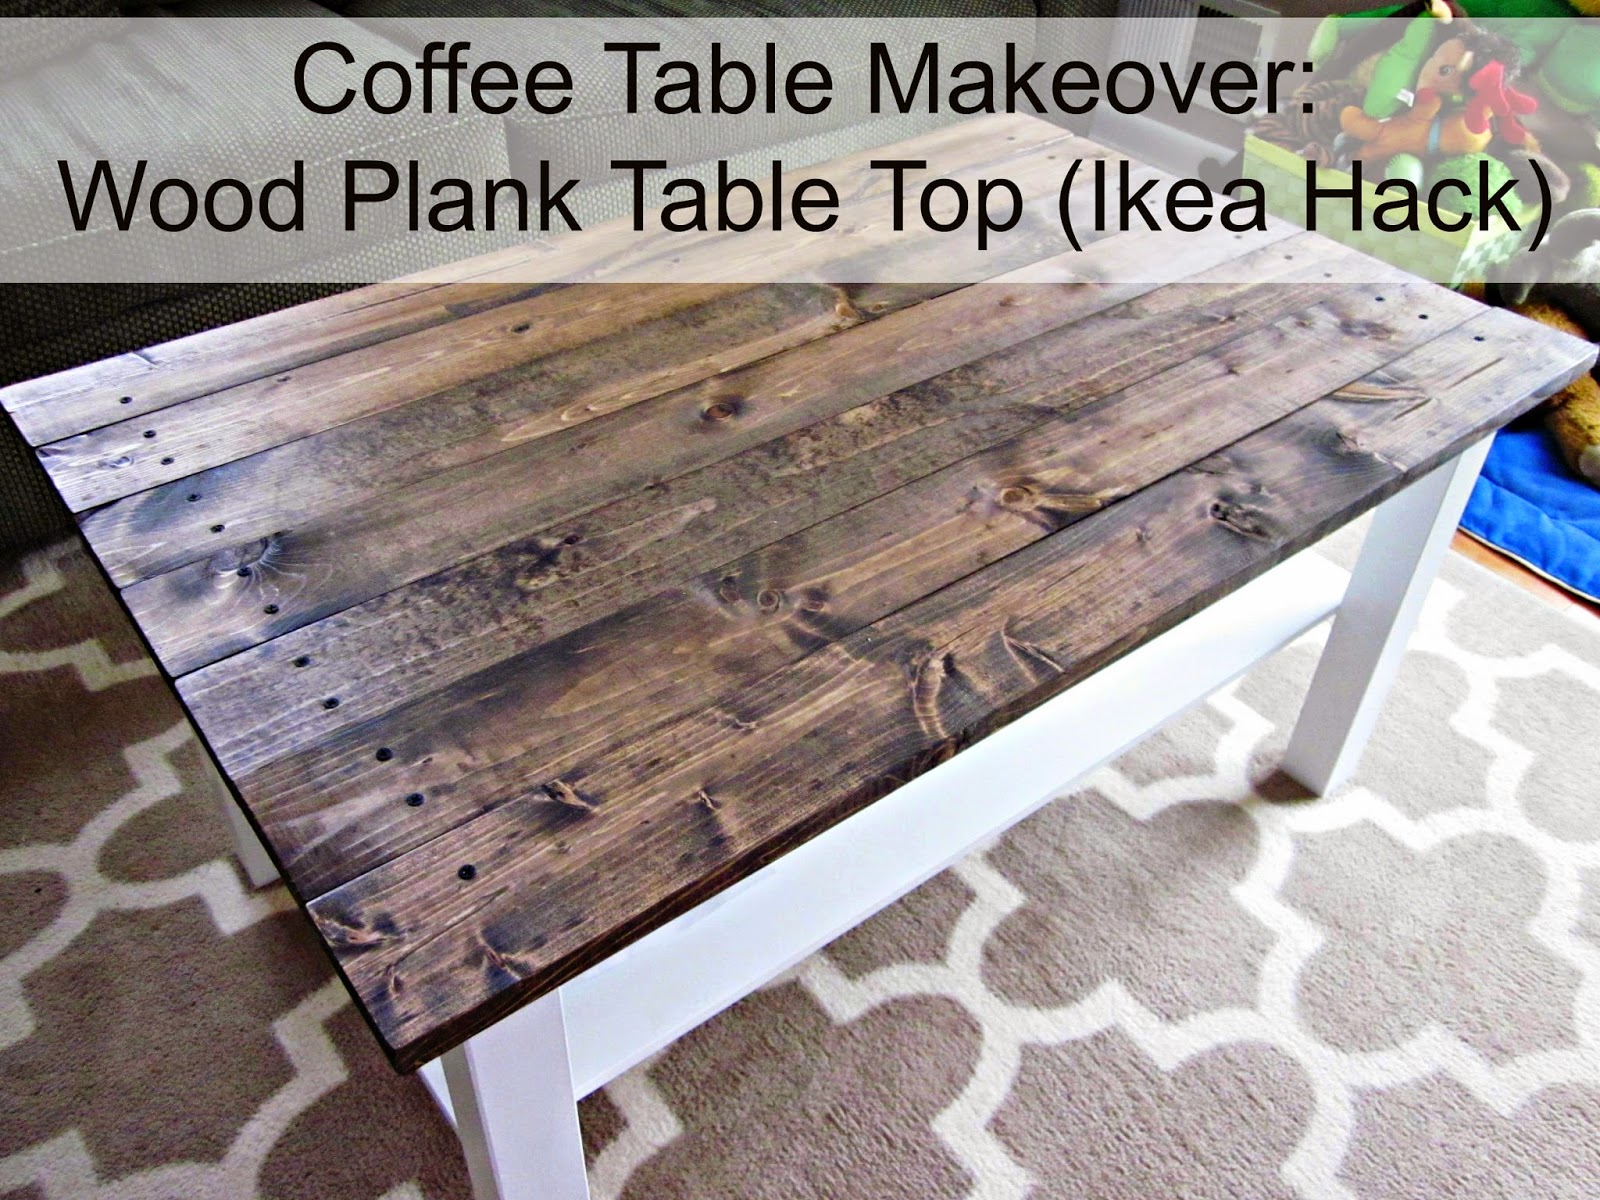 Coffee Table Makeover: Wood Plank Table Top (Ikea Hack) | This Crazy ...